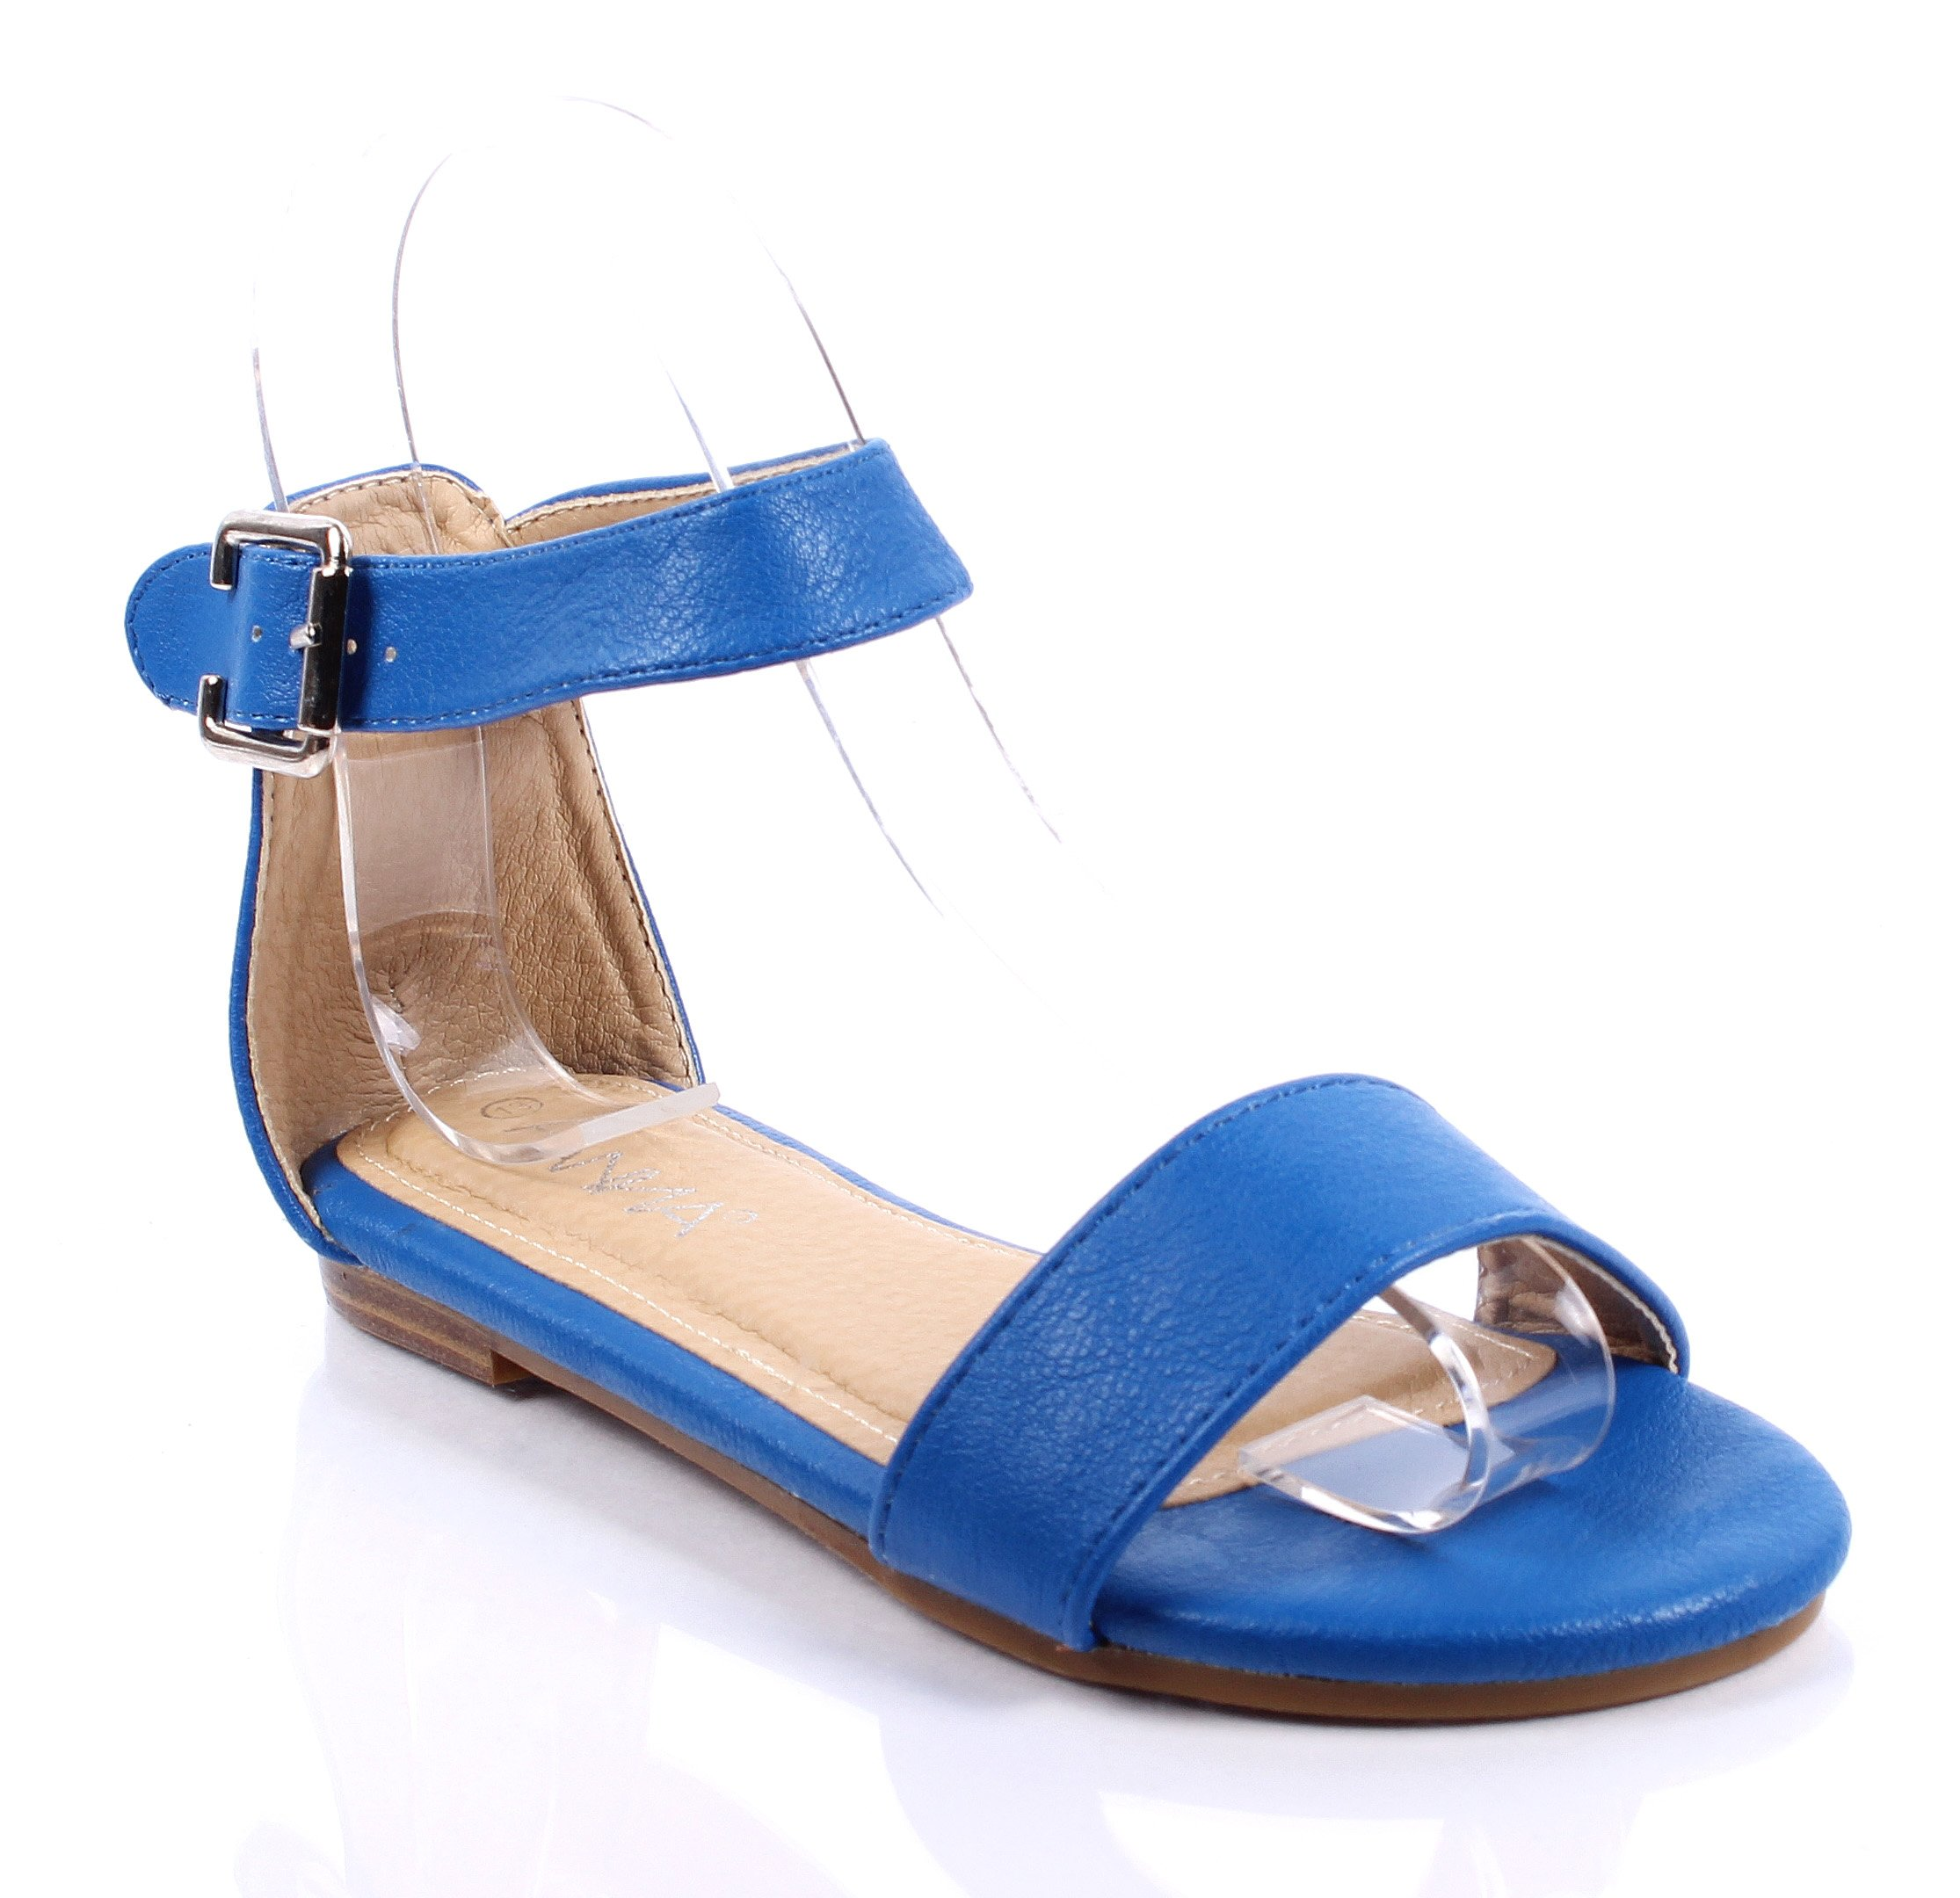 Cute Ankle Strappy Buckle Silp on Casual Girls Summer Sandals Youth Kids Shoes Size New Without Box (9, Royal Blue)